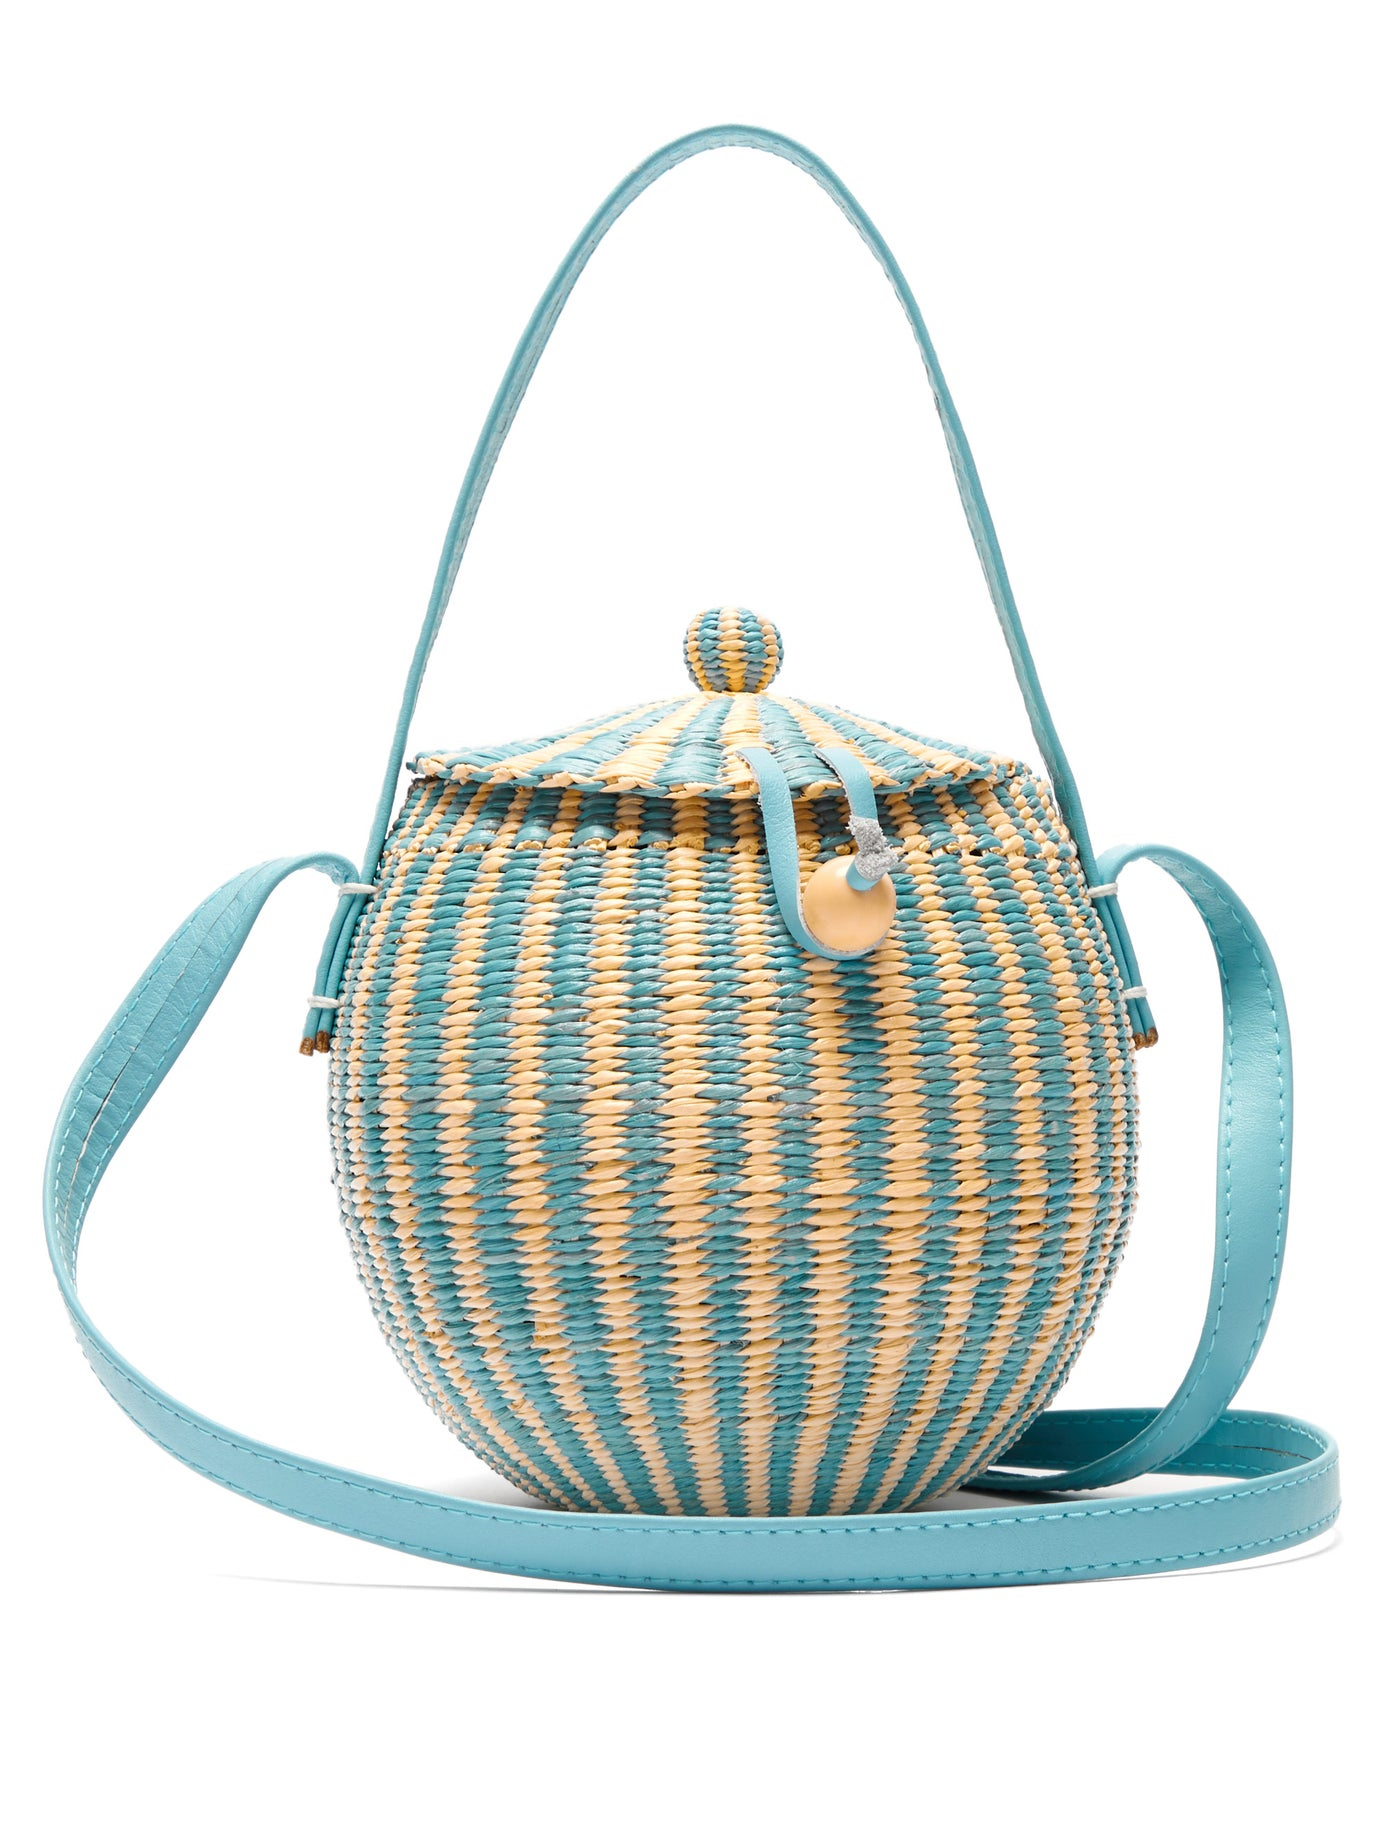 we've never met a straw bag we didn't love… how sweet is this  woven striped bag ?!?!